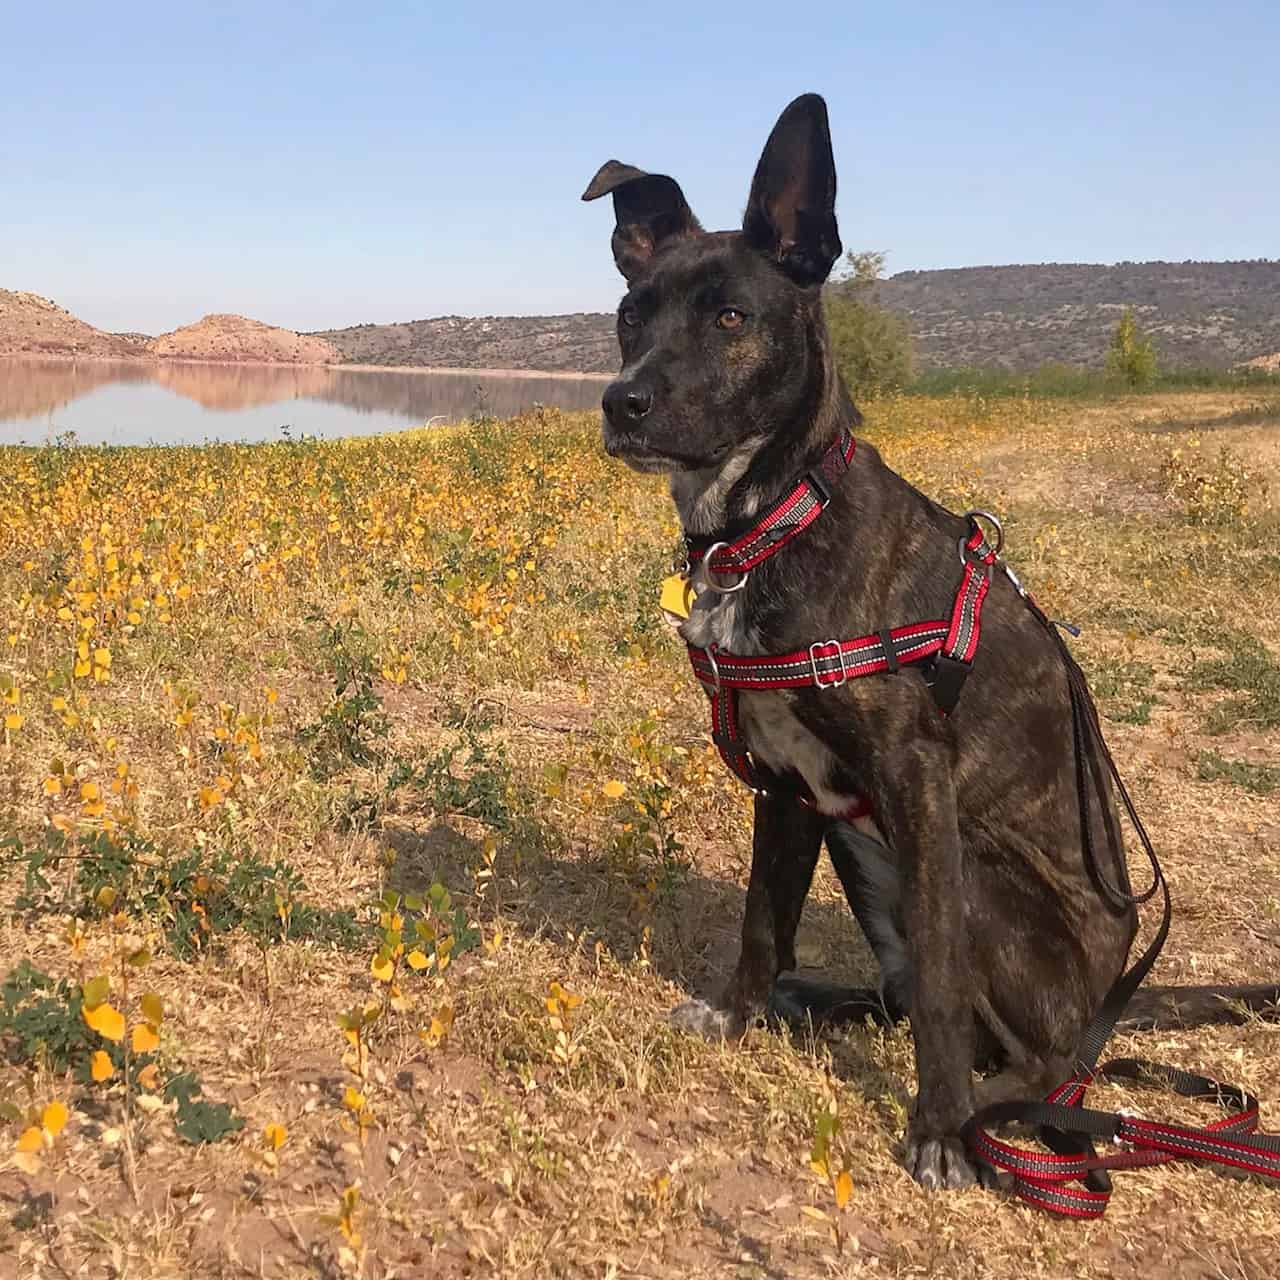 Brindle colored dog with a red color and harness sitting in a field with a lake in the background